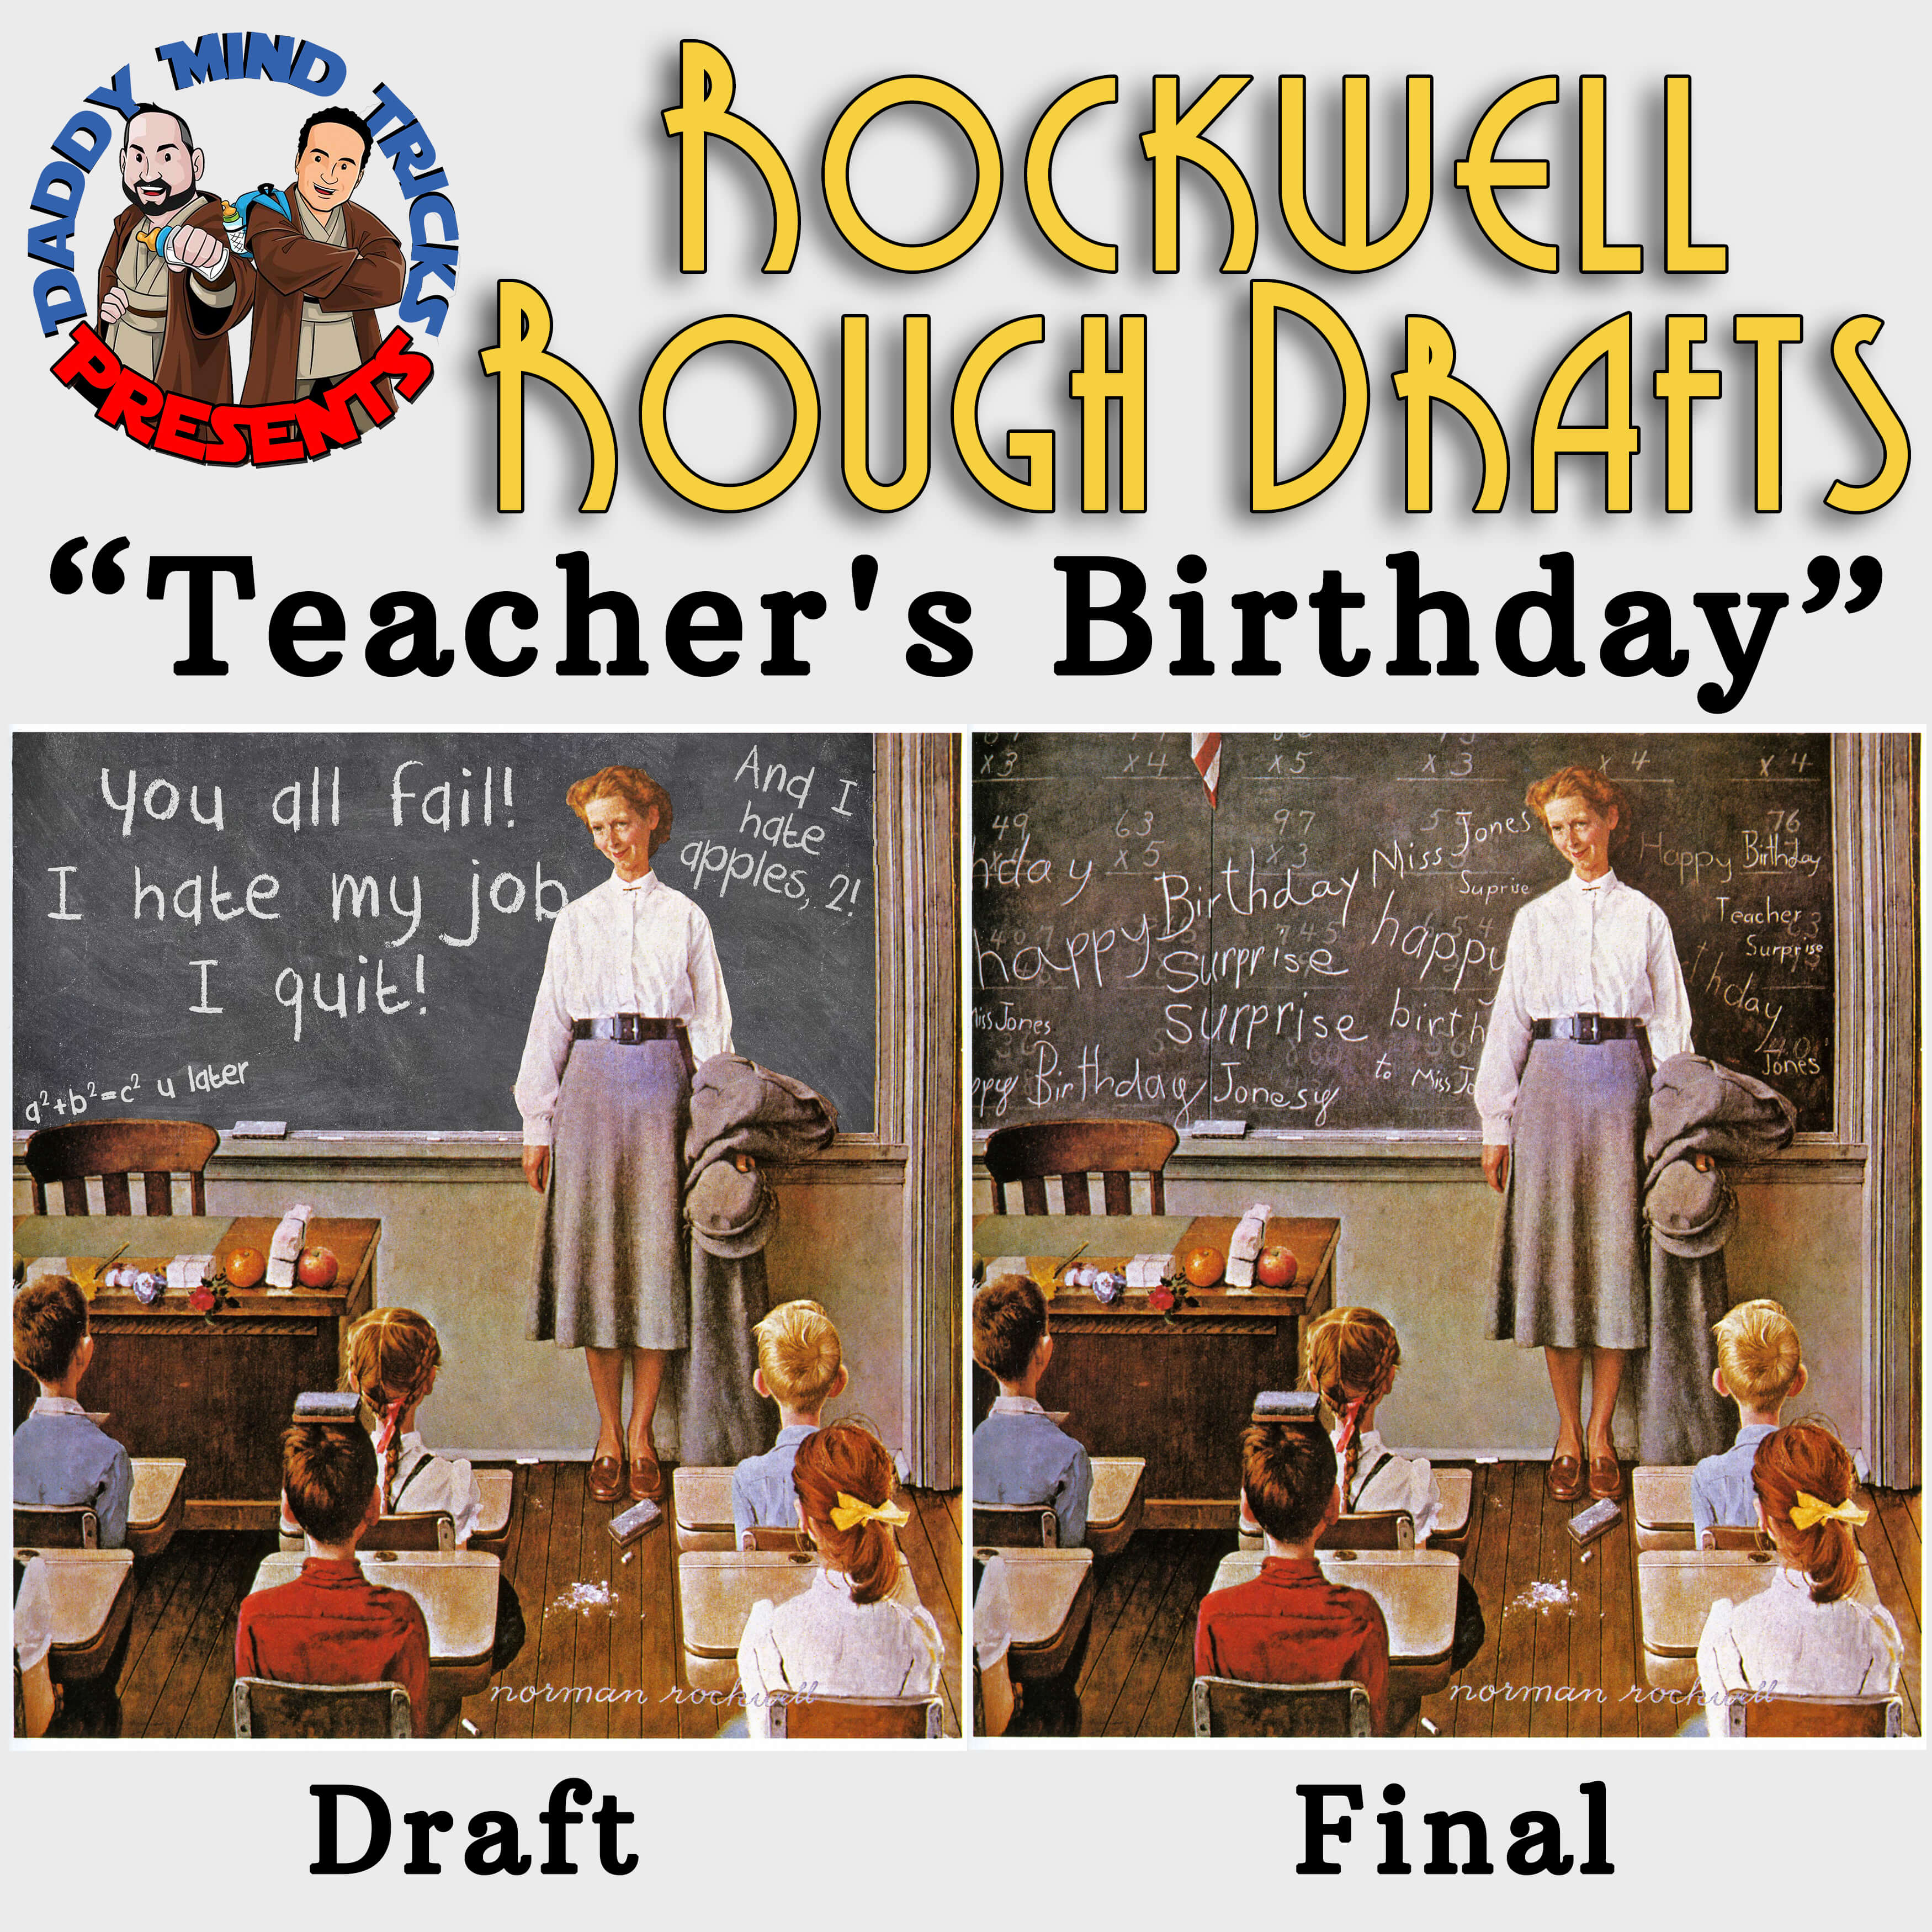 teacher's birthday rockwell rough drafts